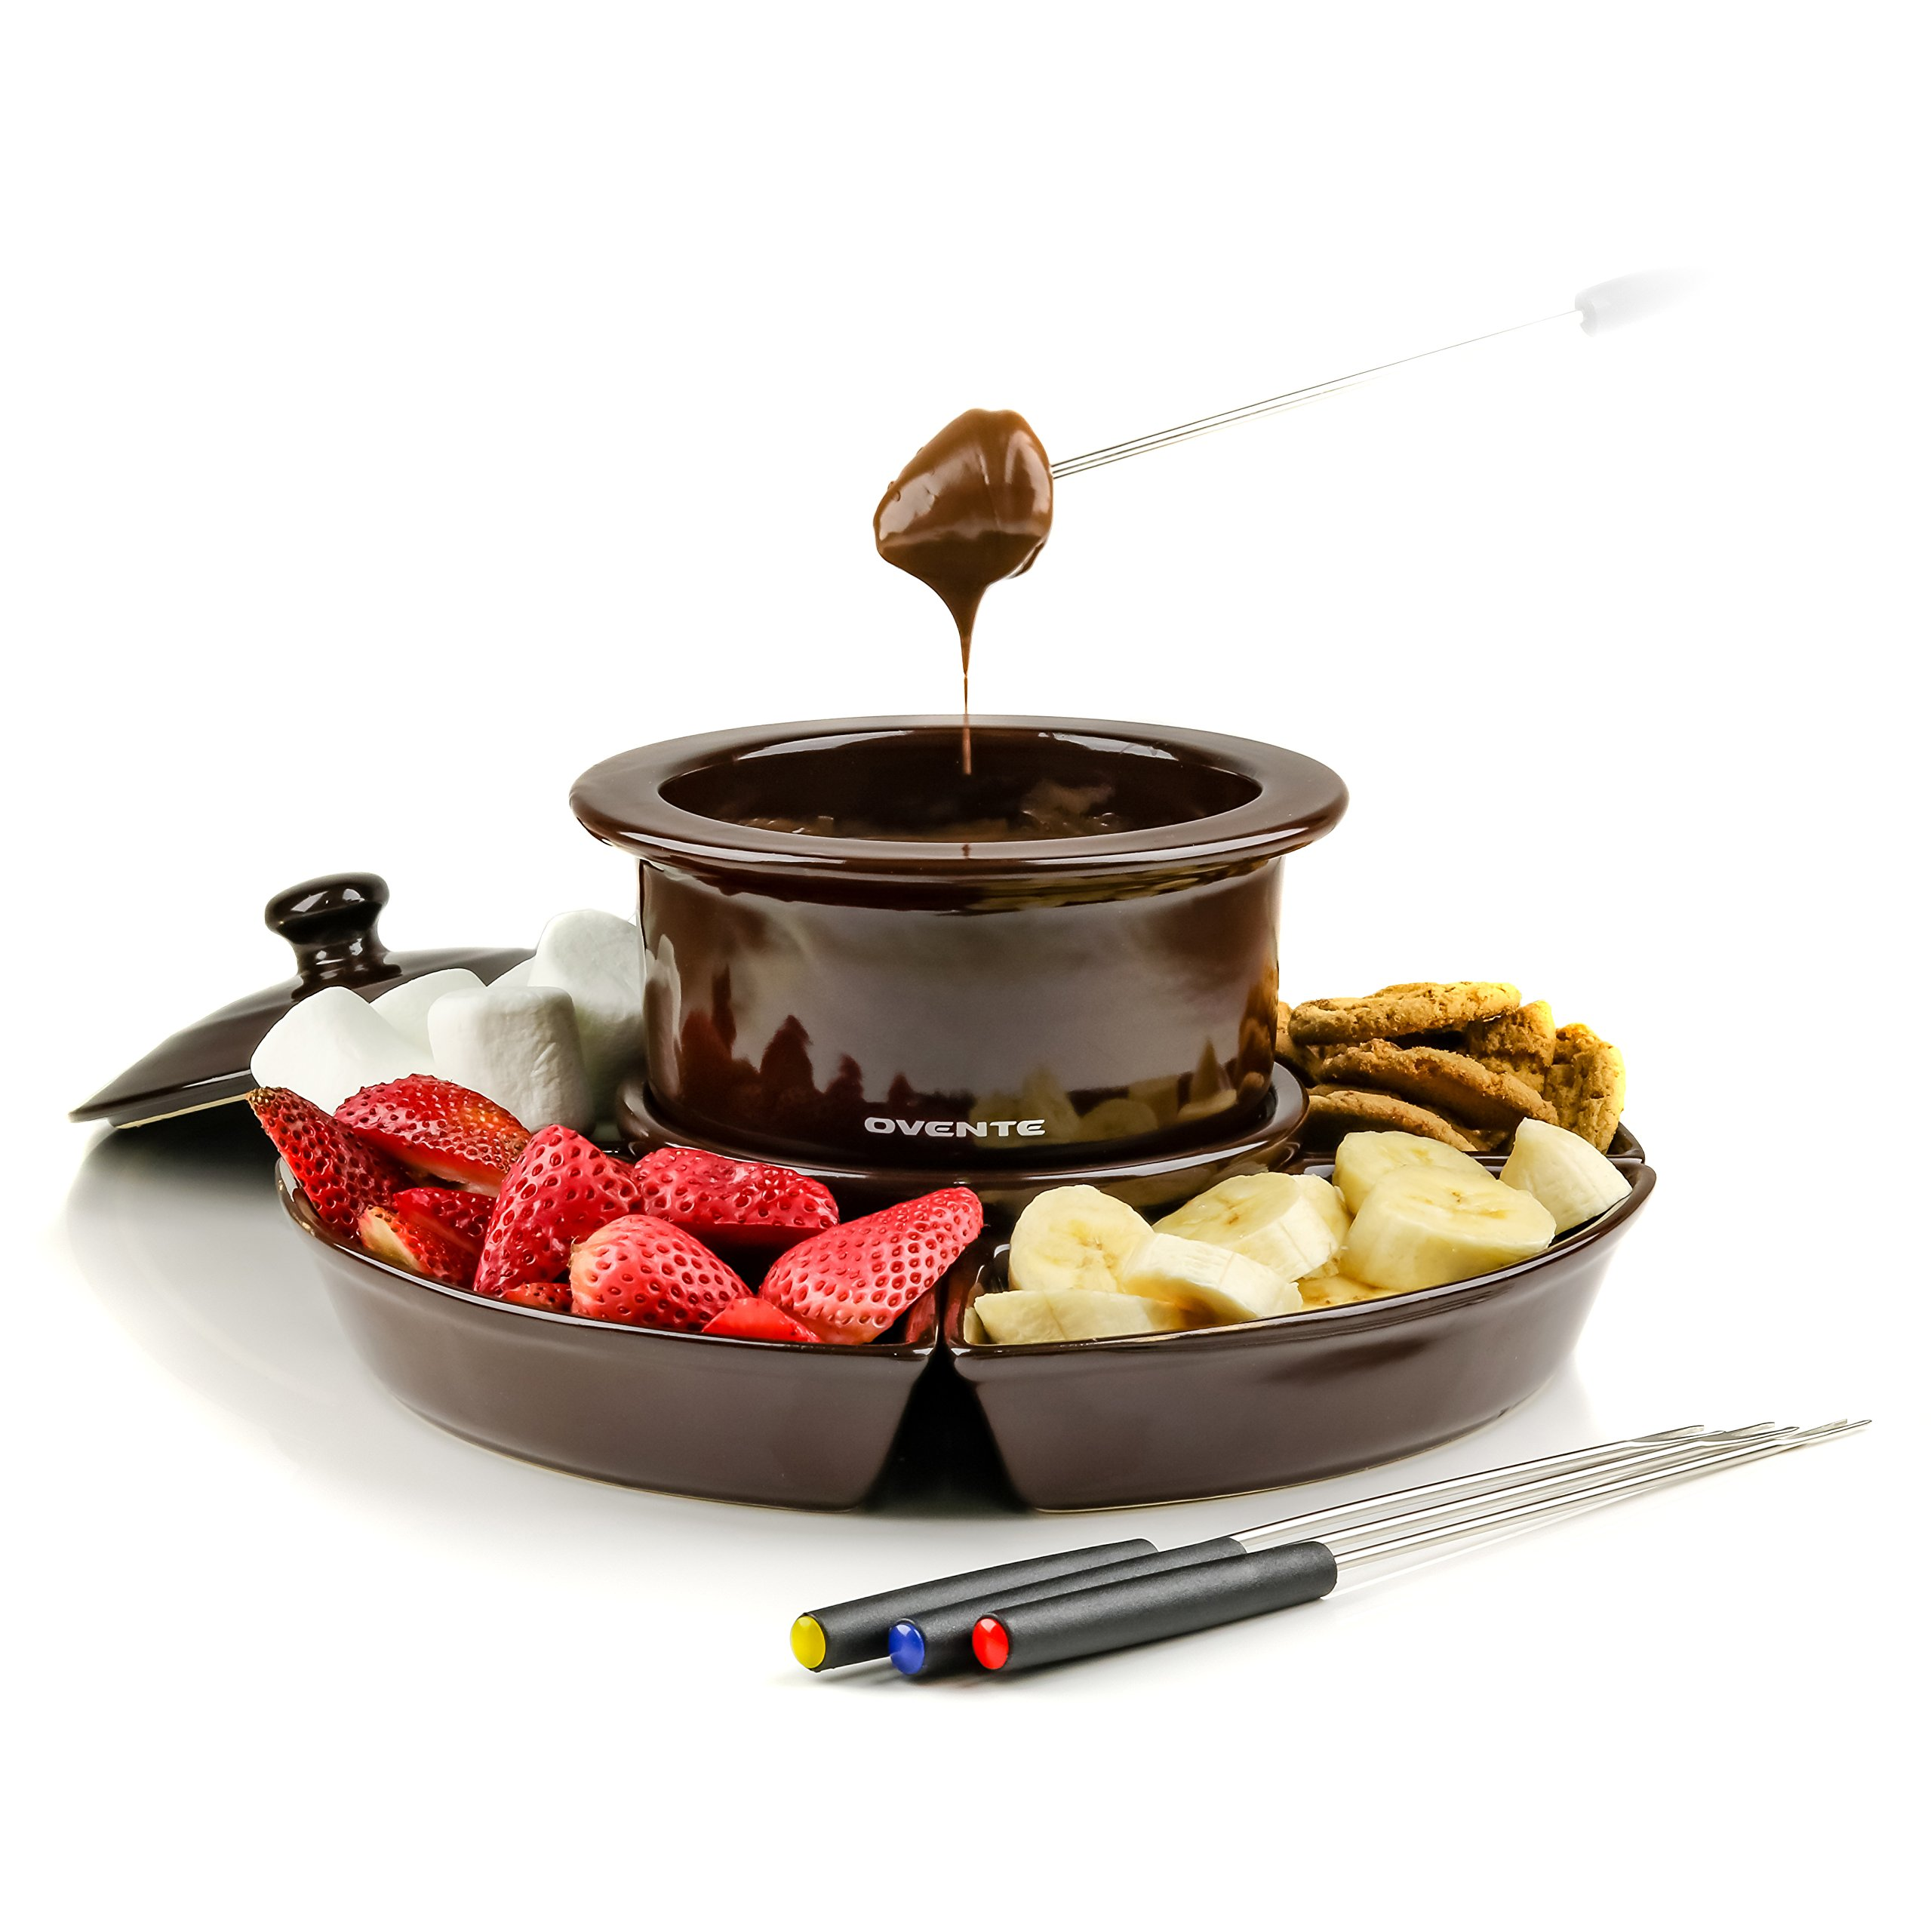 Ovente CFC317BR Electric Cheese/Chocolate Fondue Melting Pots and Warmer Set, 1 Liter, Brown by Ovente